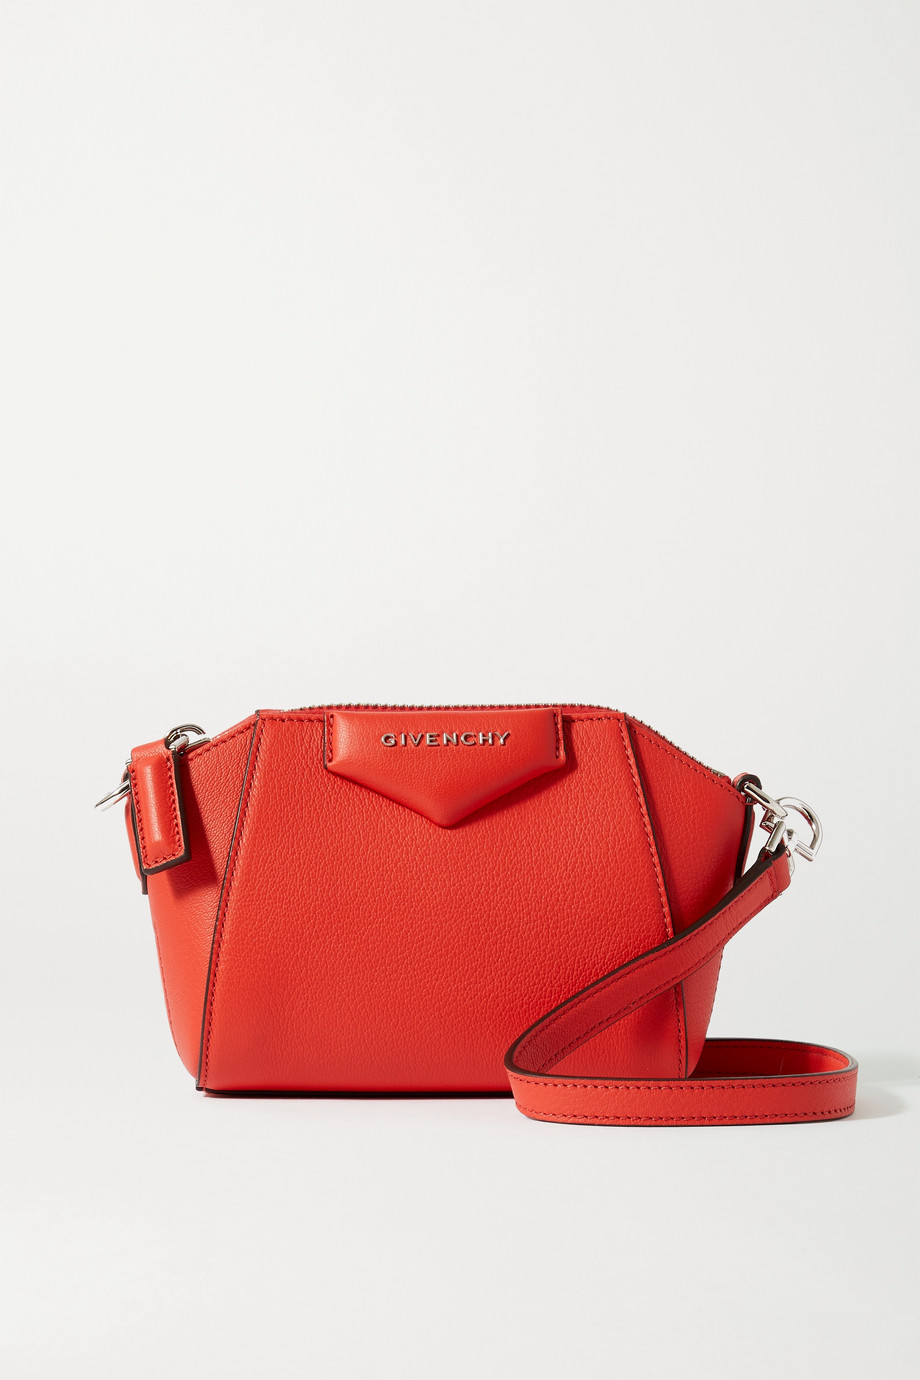 Givenchy Antigona nano textured-leather shoulder bag